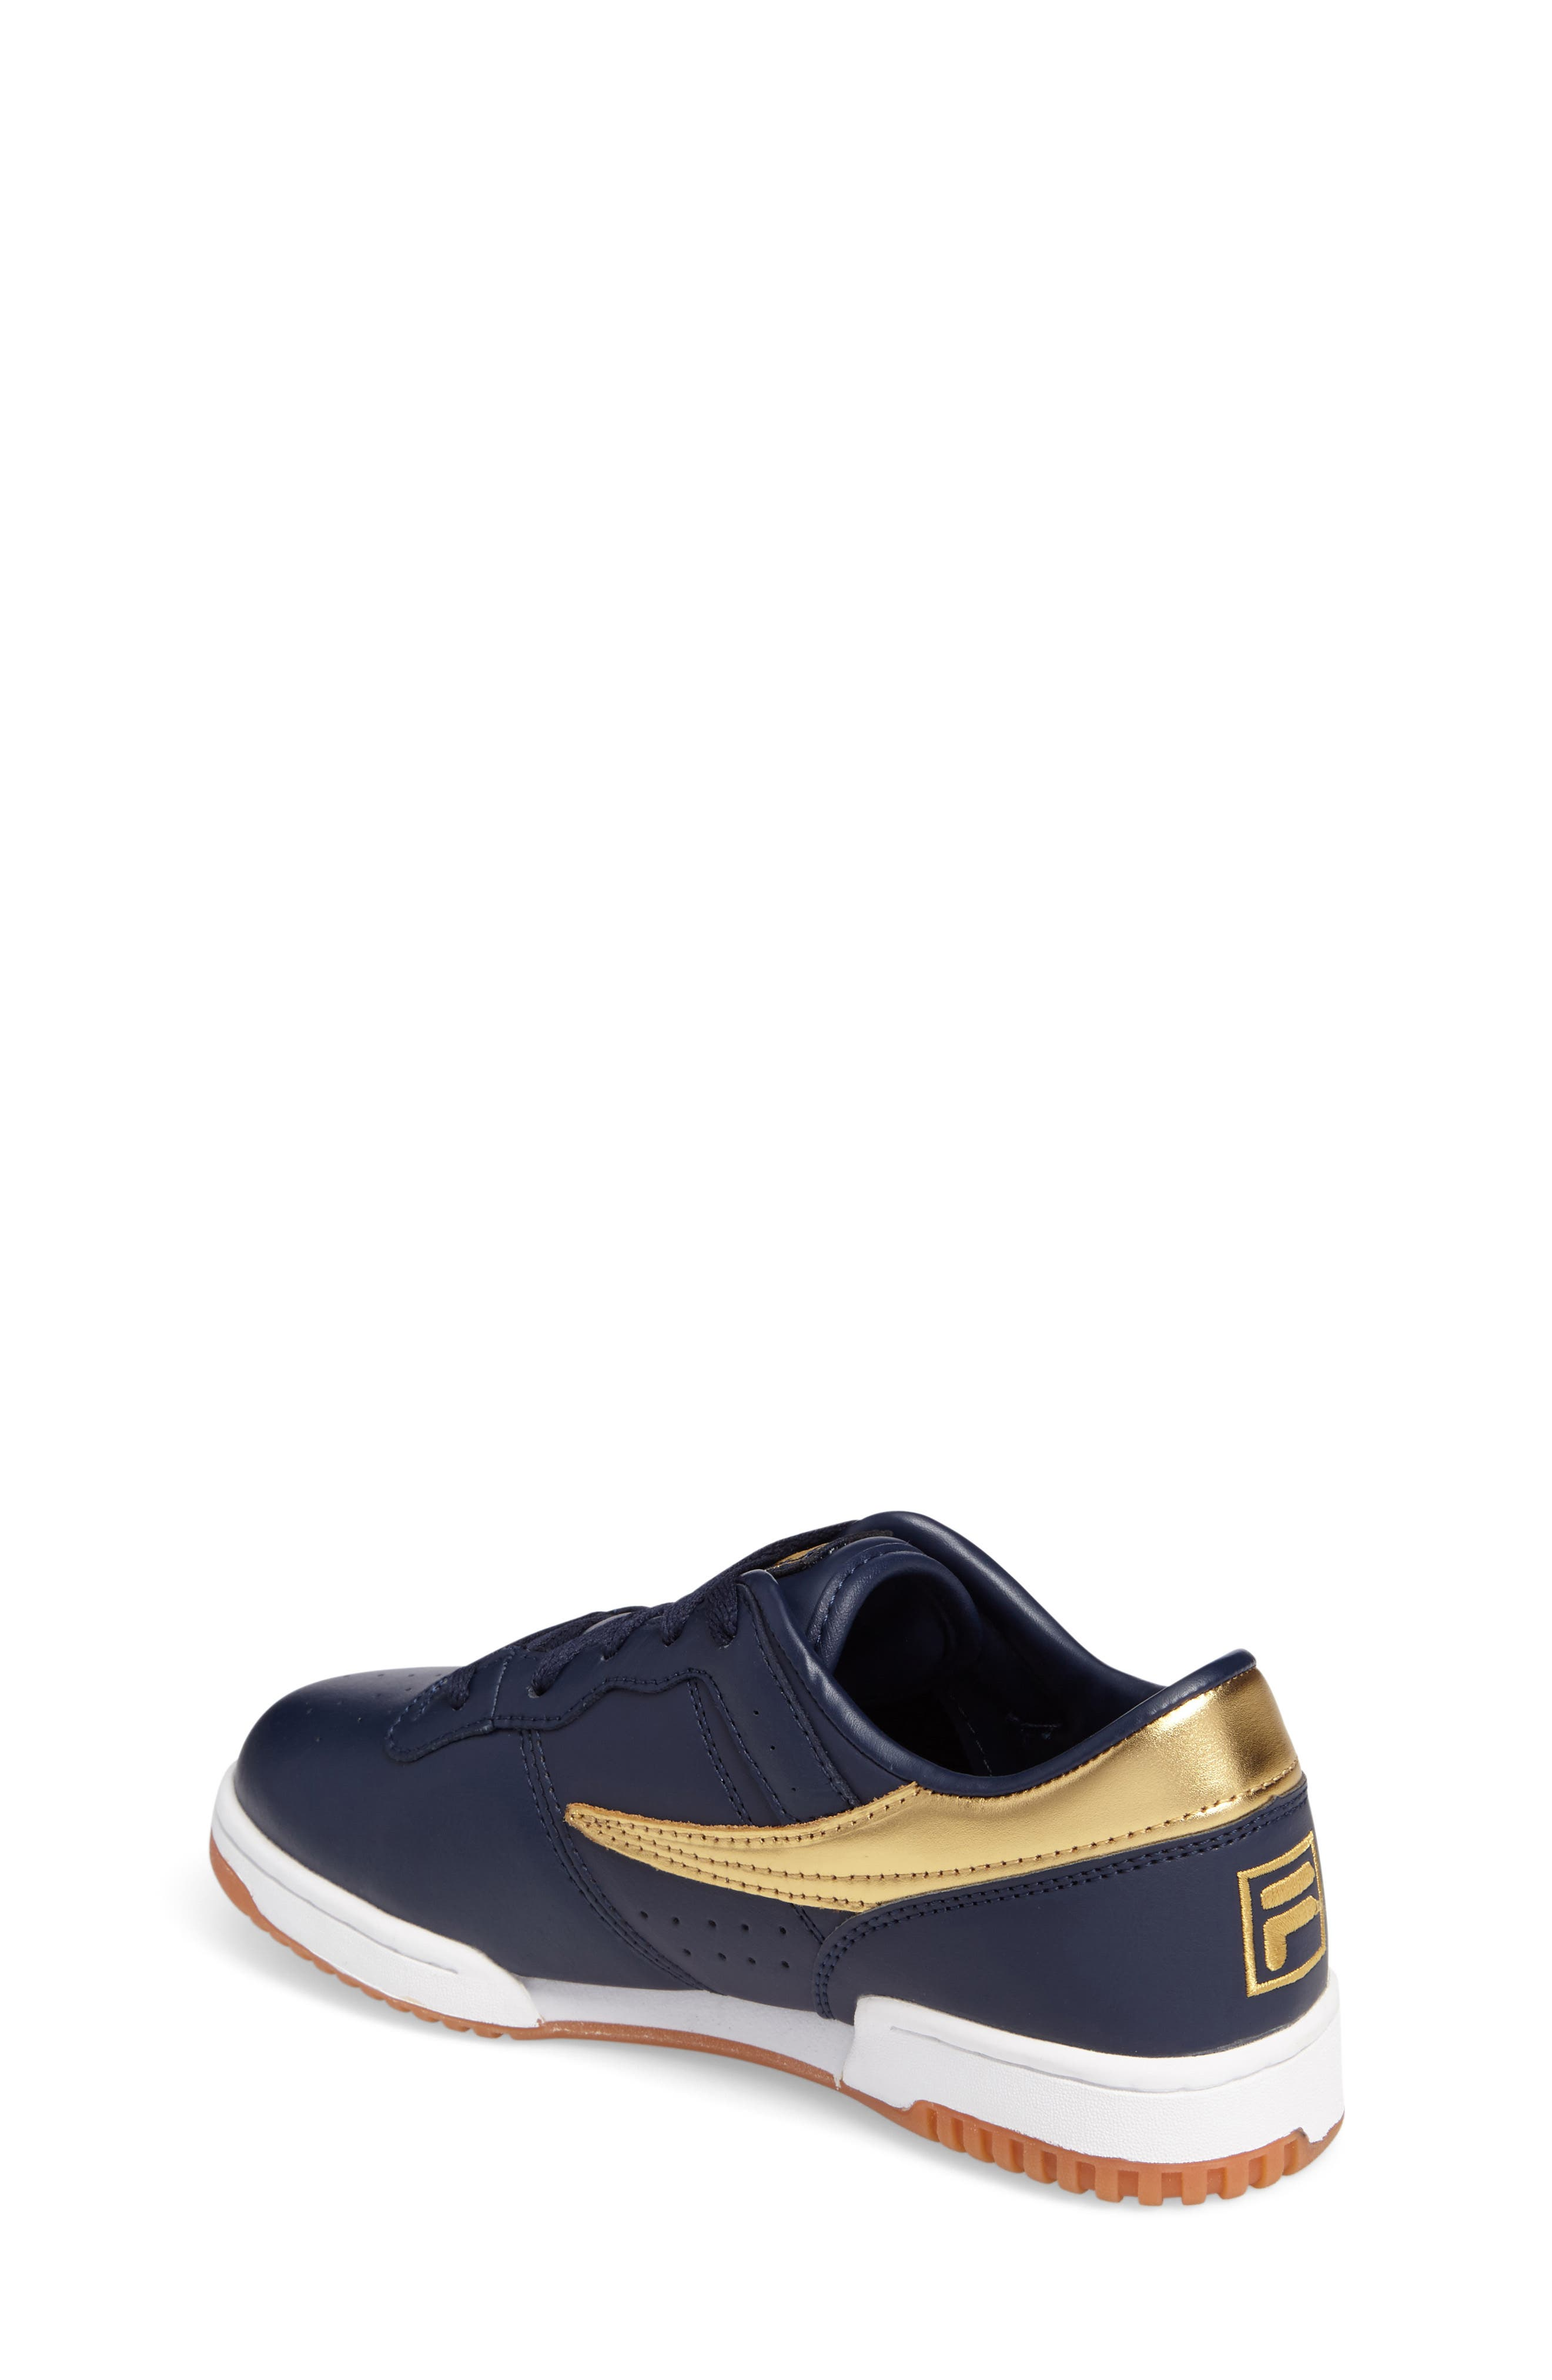 Heritage Sneaker,                             Alternate thumbnail 2, color,                             Navy/ Gold Faux Leather